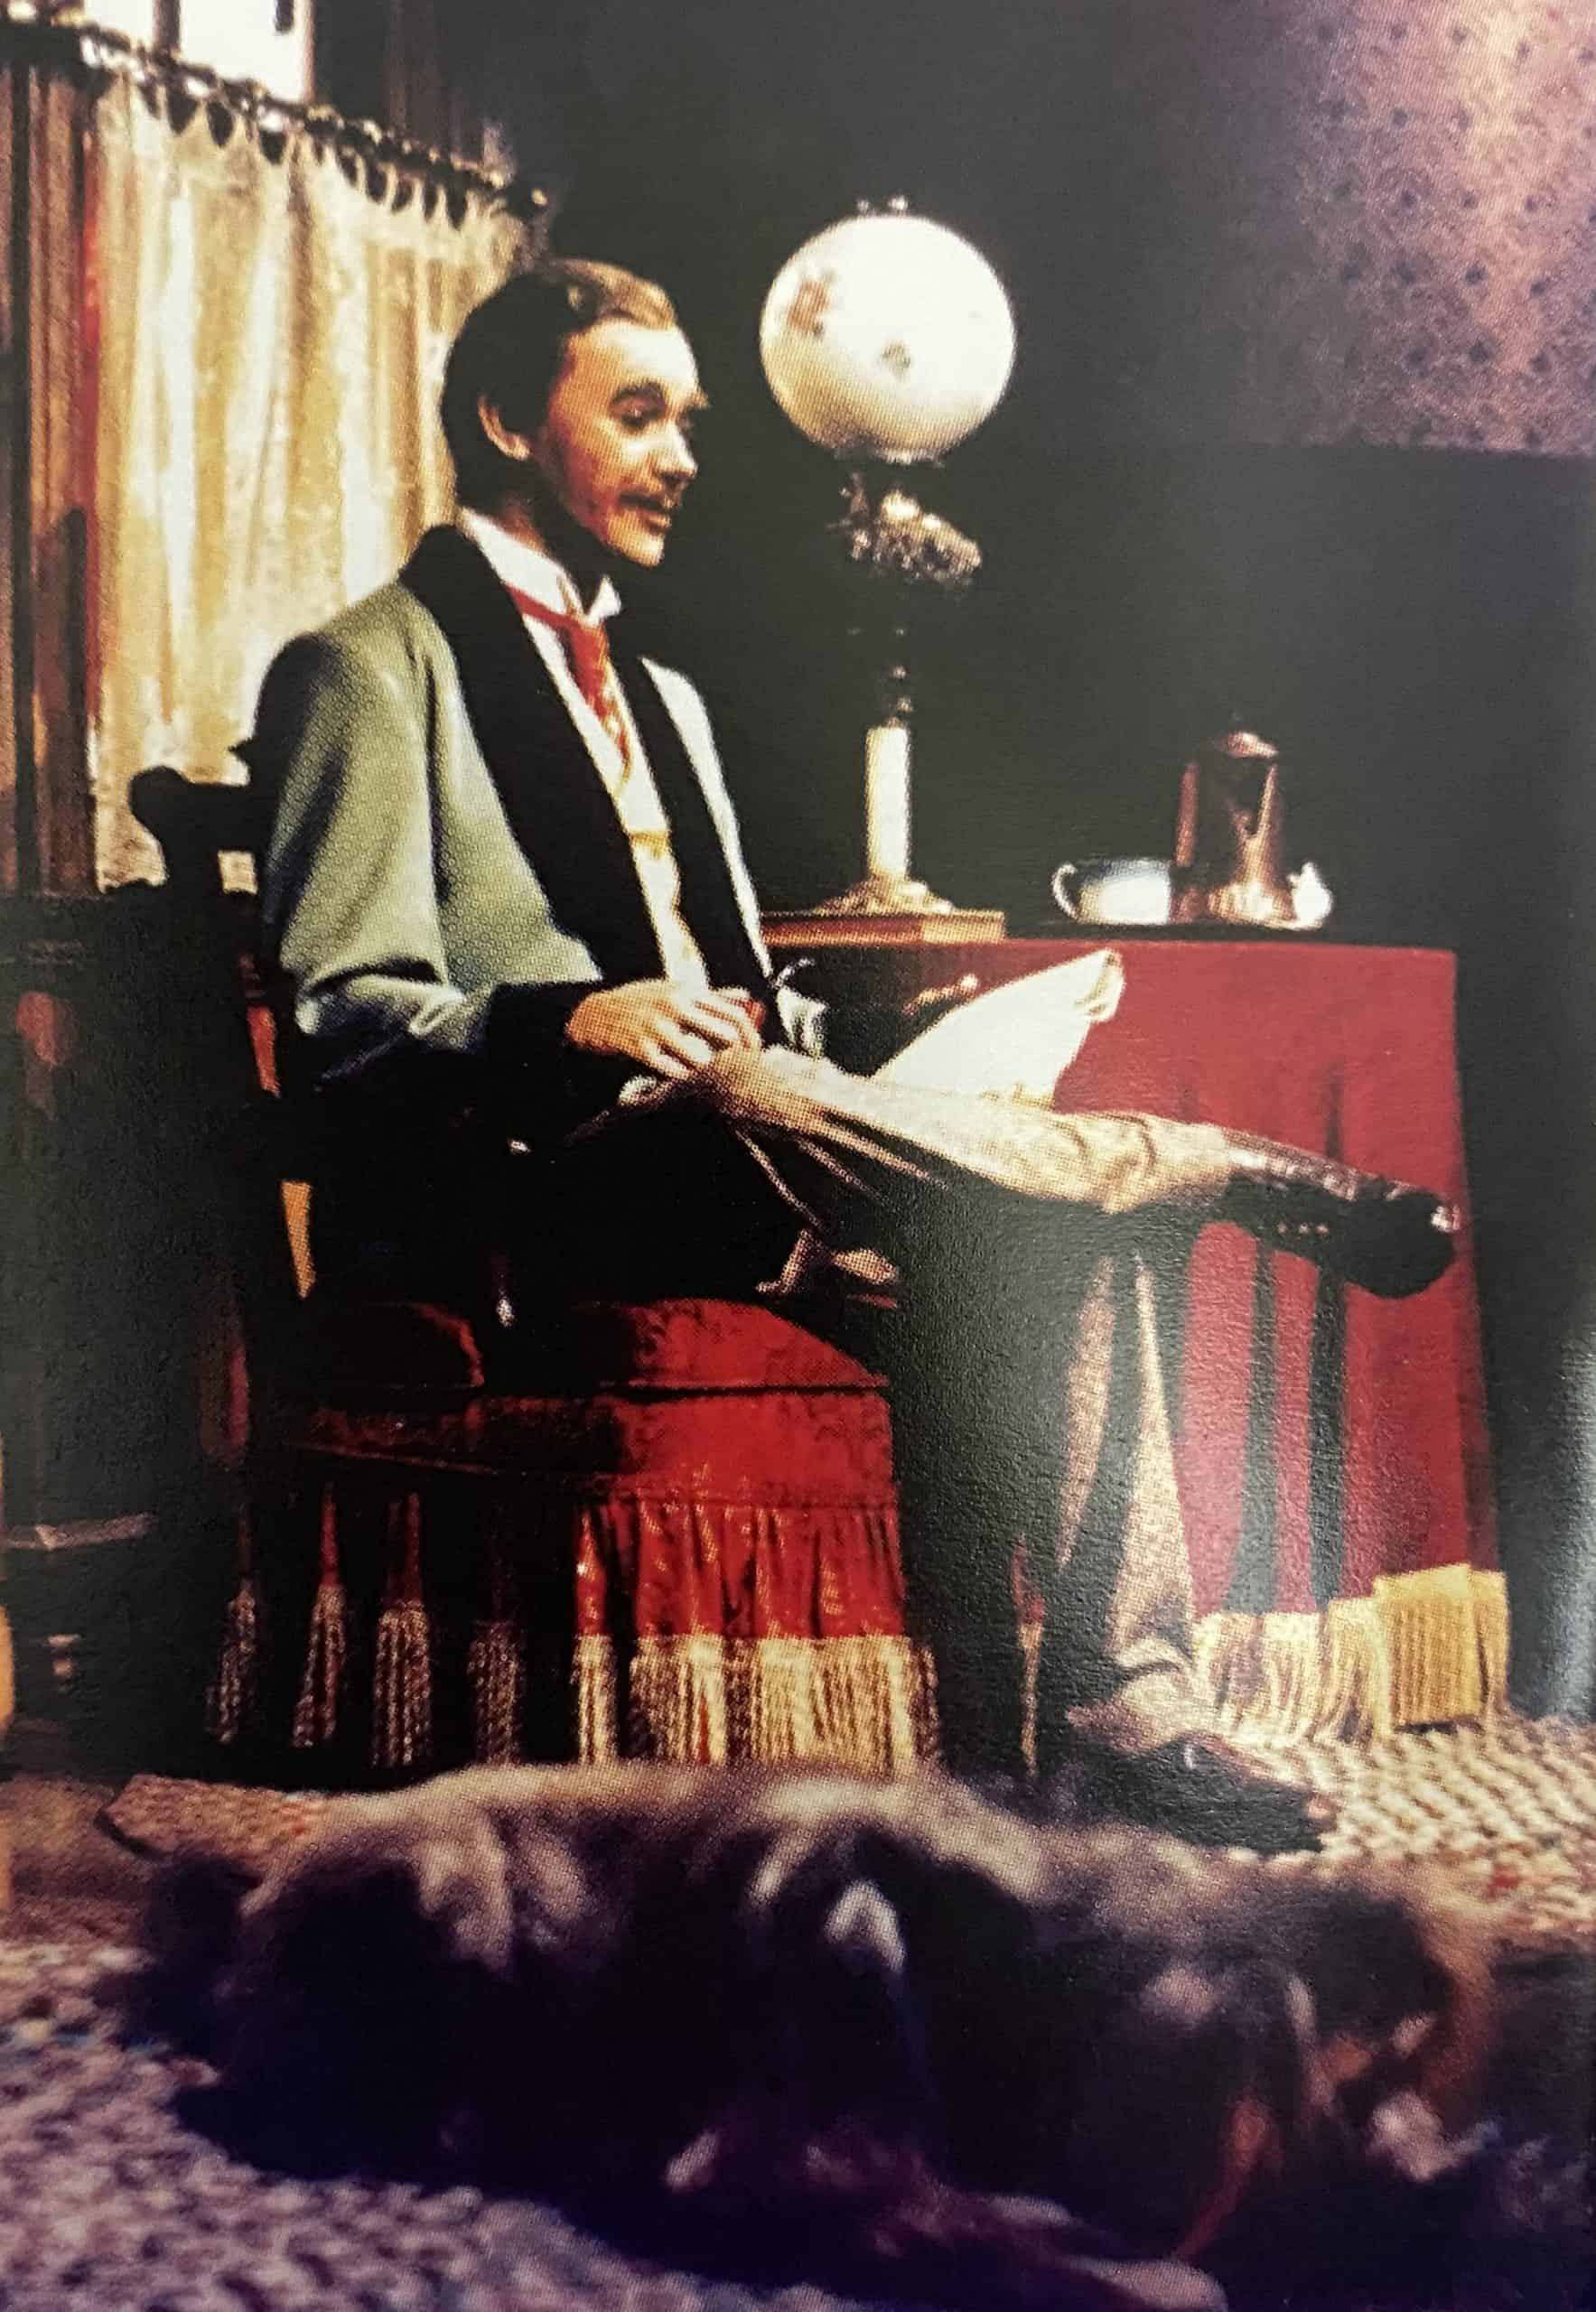 Carousel of Progress Father